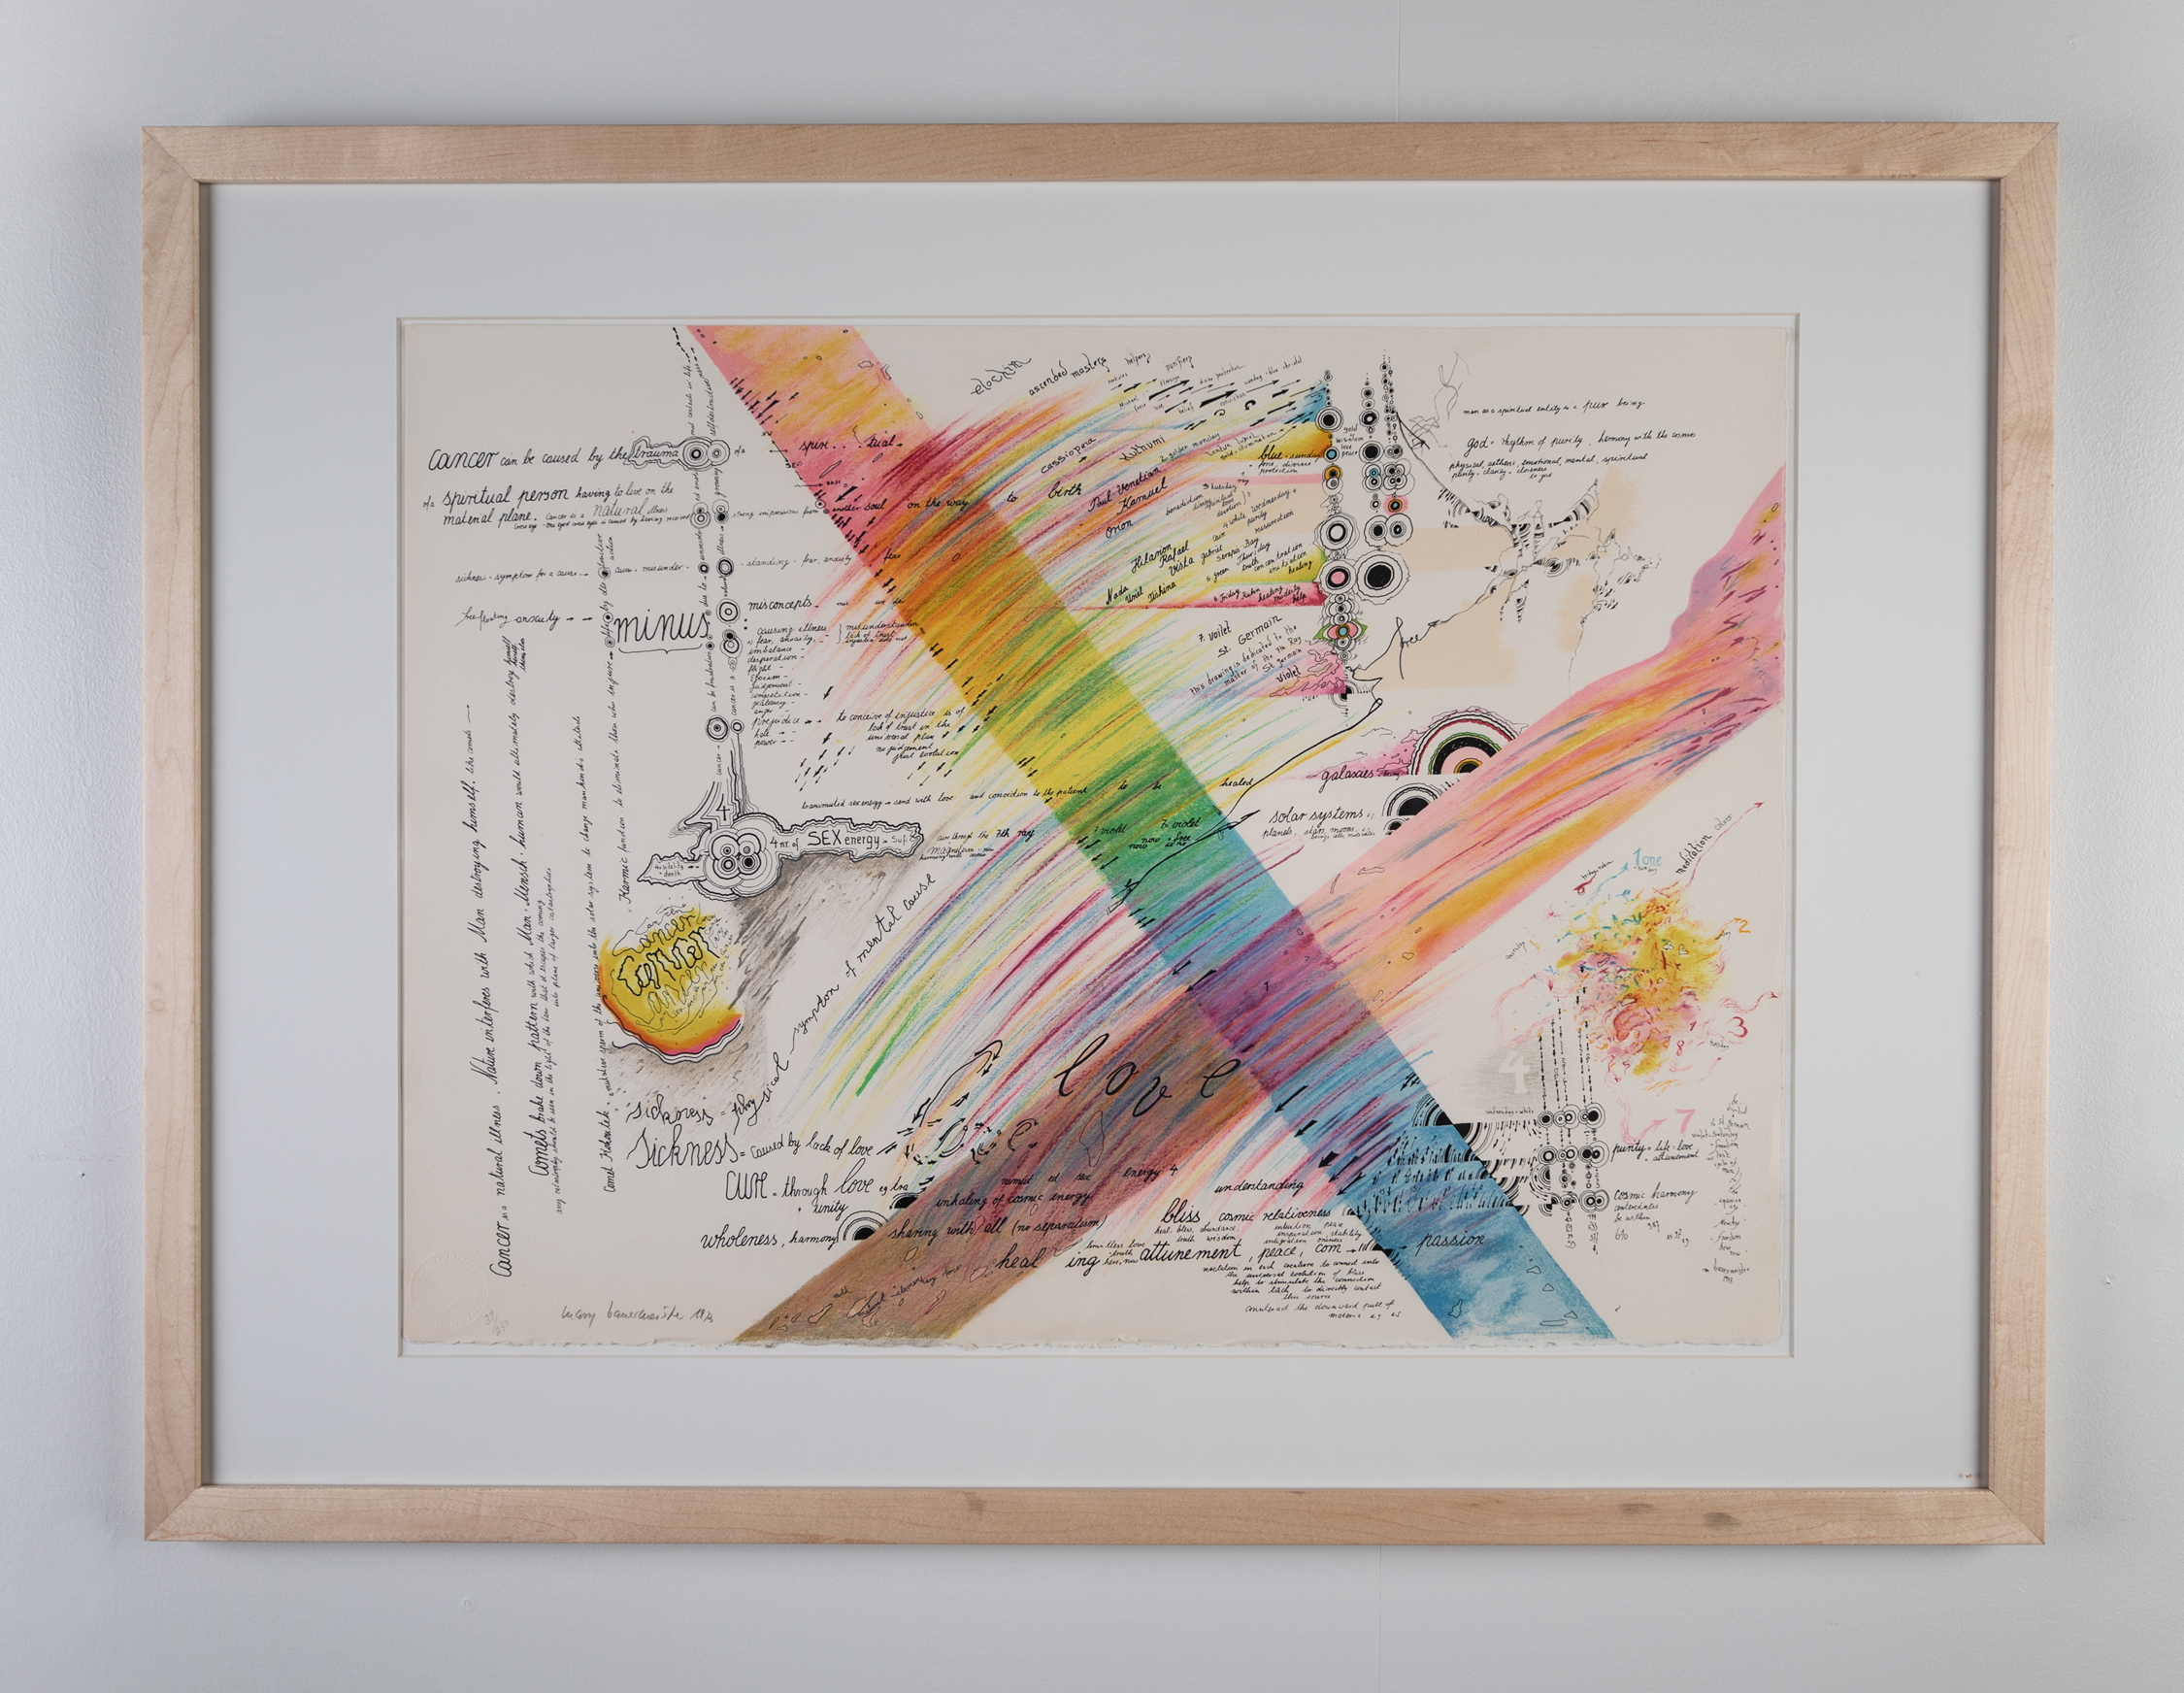 Mary Bauermeister, Rainbow, Lithography, 18.625in. x 25.75in., 1973